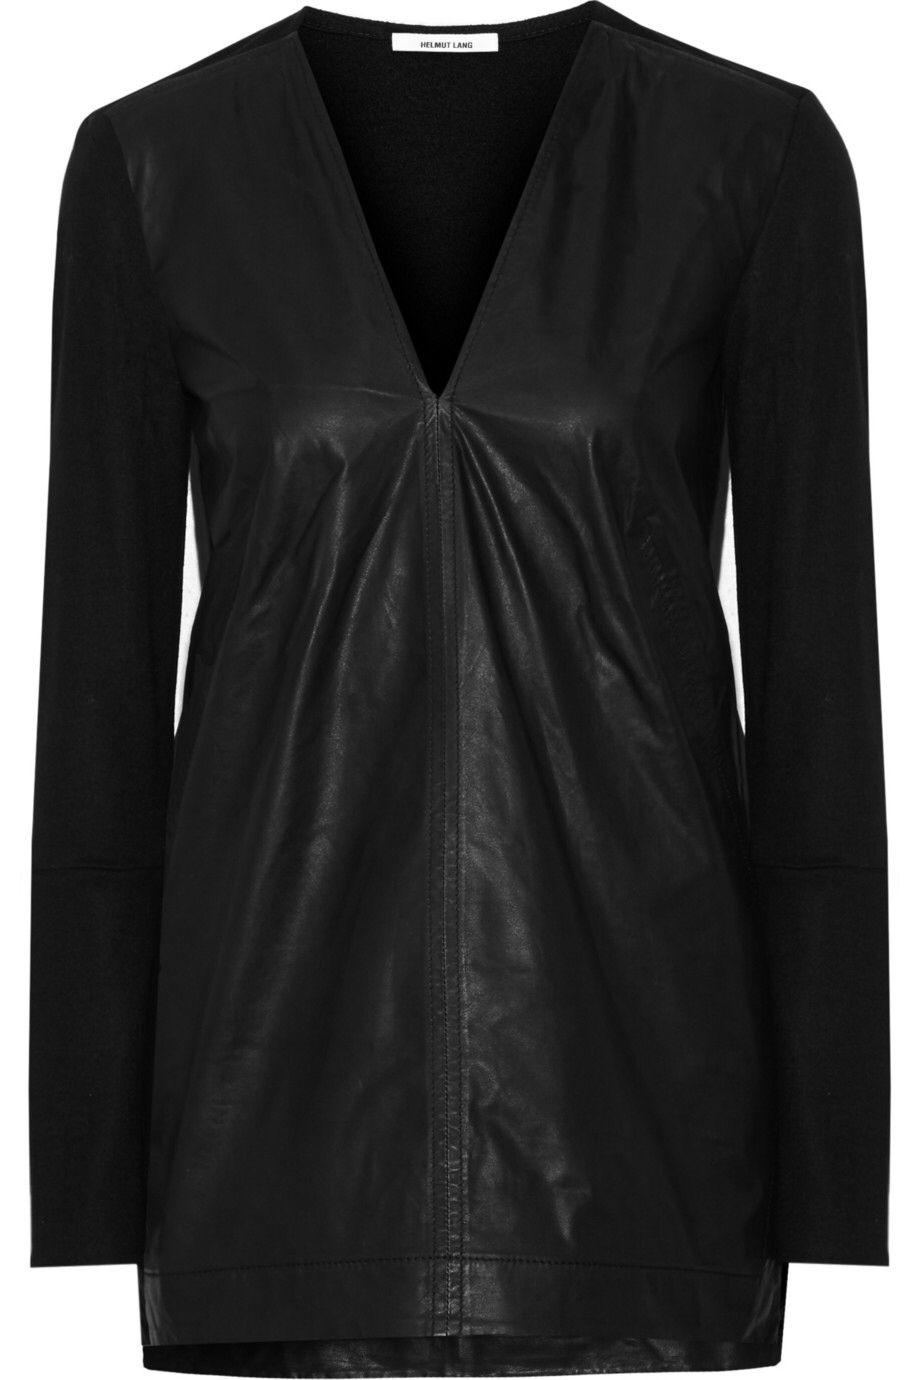 HELMUT LANG Wool-paneled leather top $267.75 http://www.theoutnet.com/products/618448